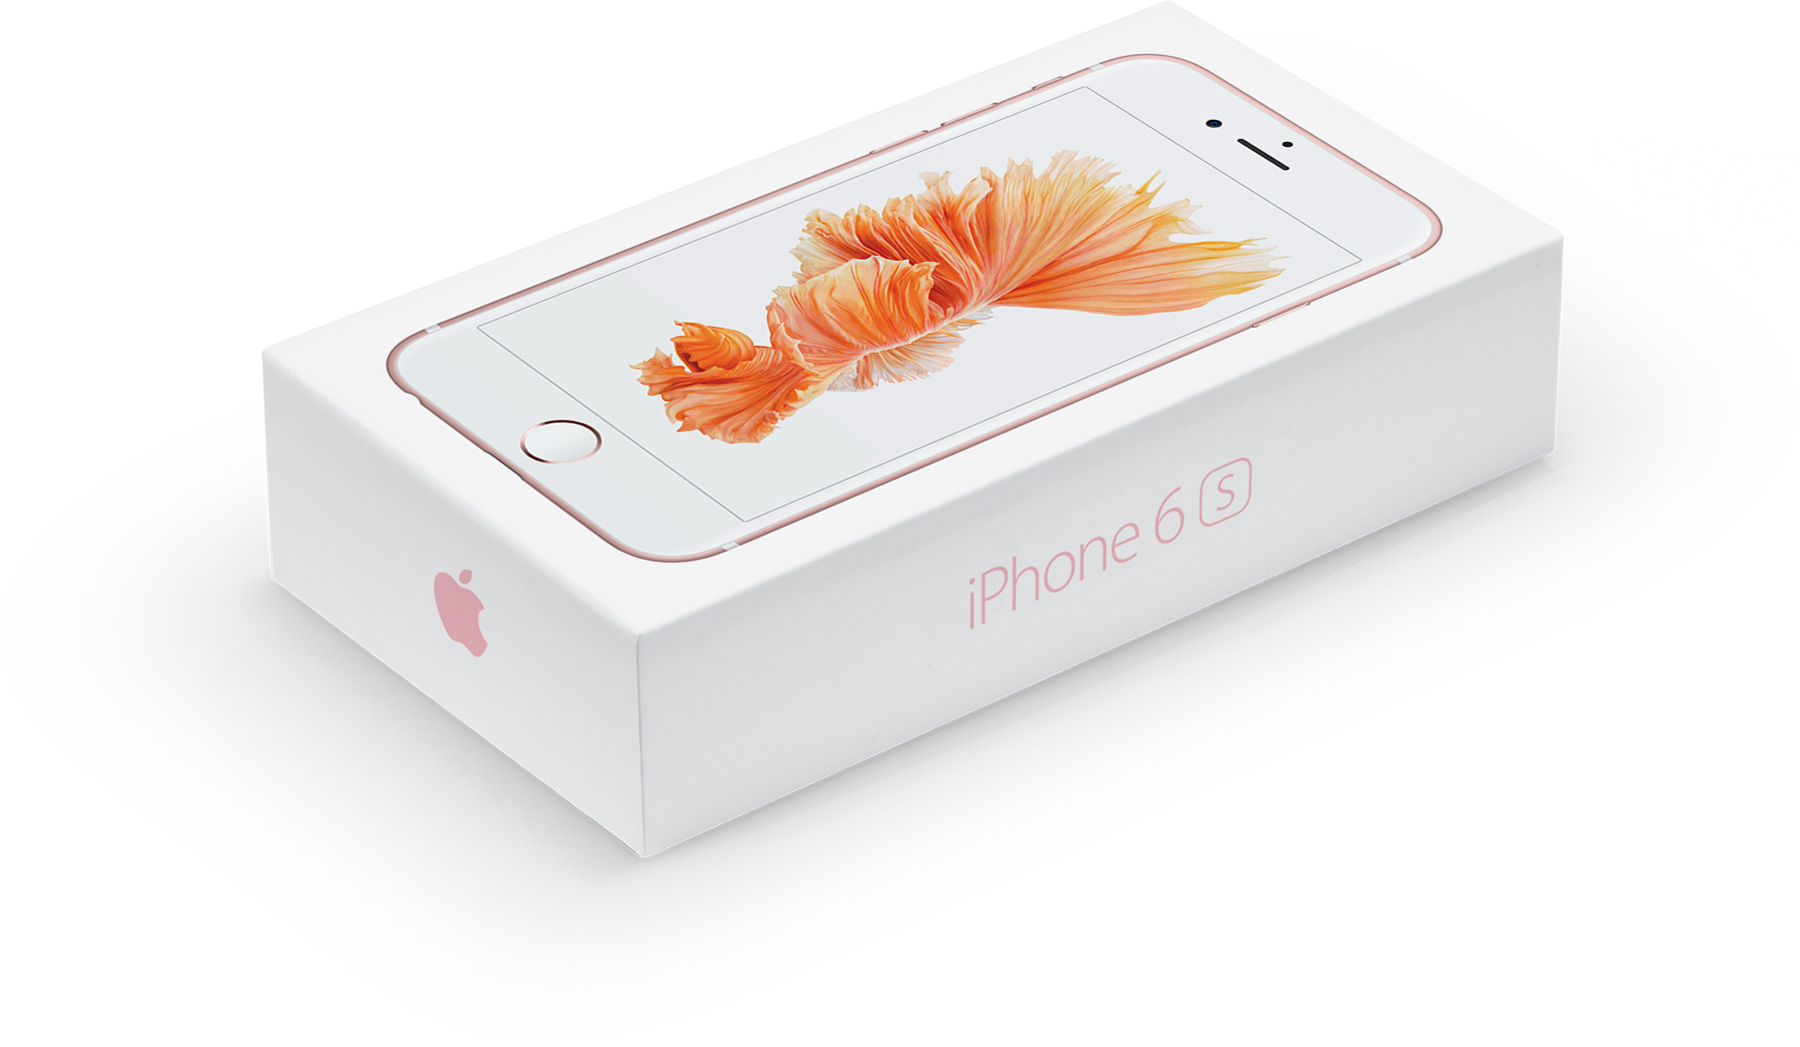 iPhone Trade In iPhone 6s